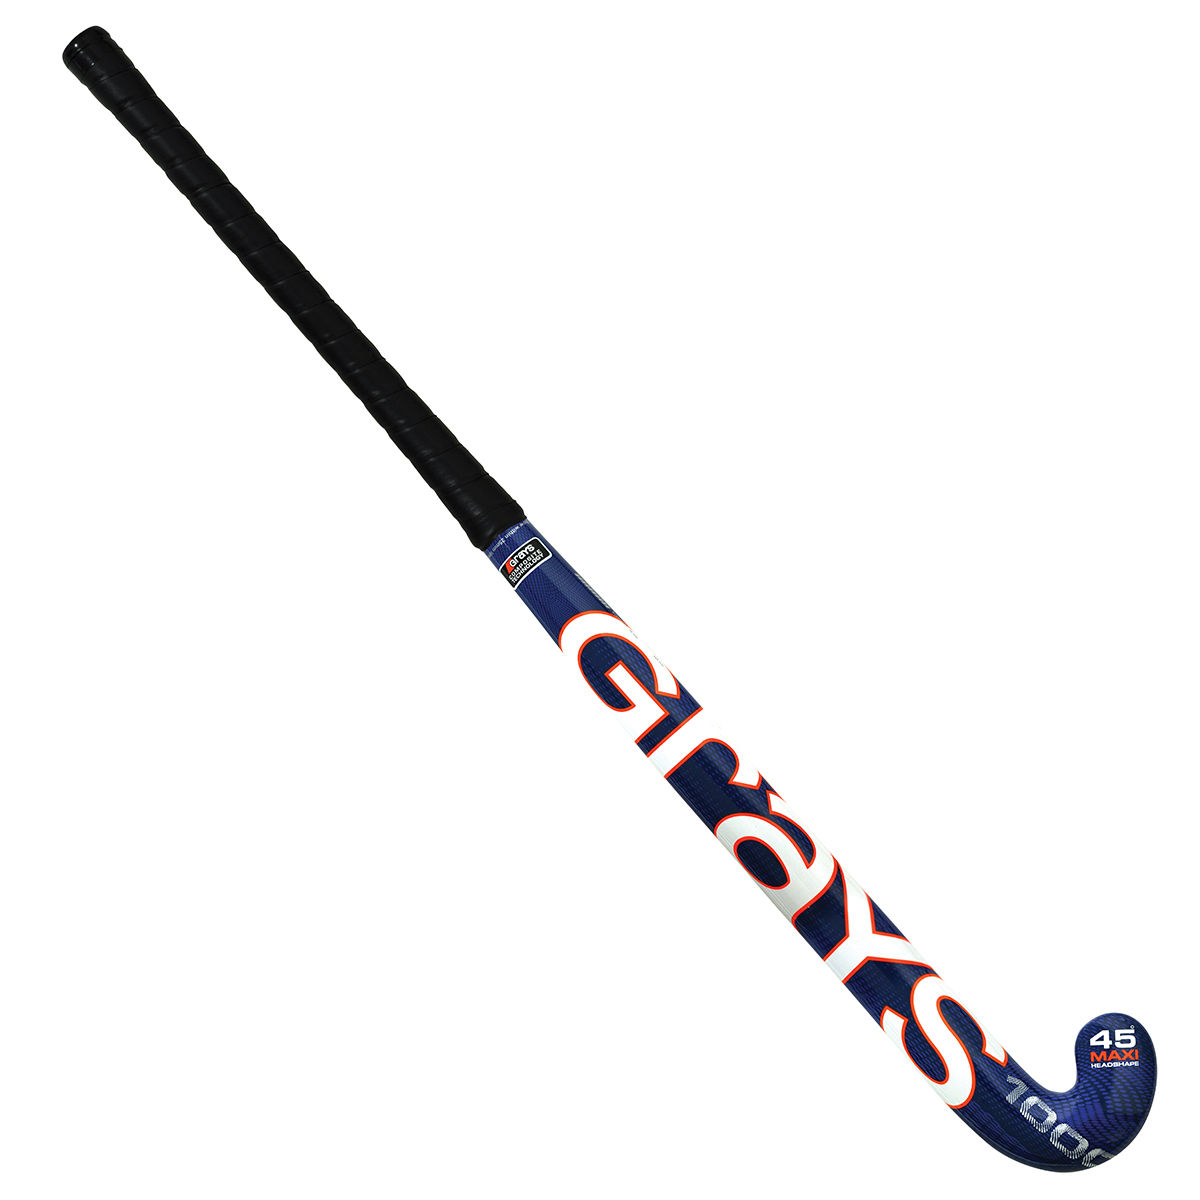 Cran Barry GX 1000 2017 Field Hockey Stick